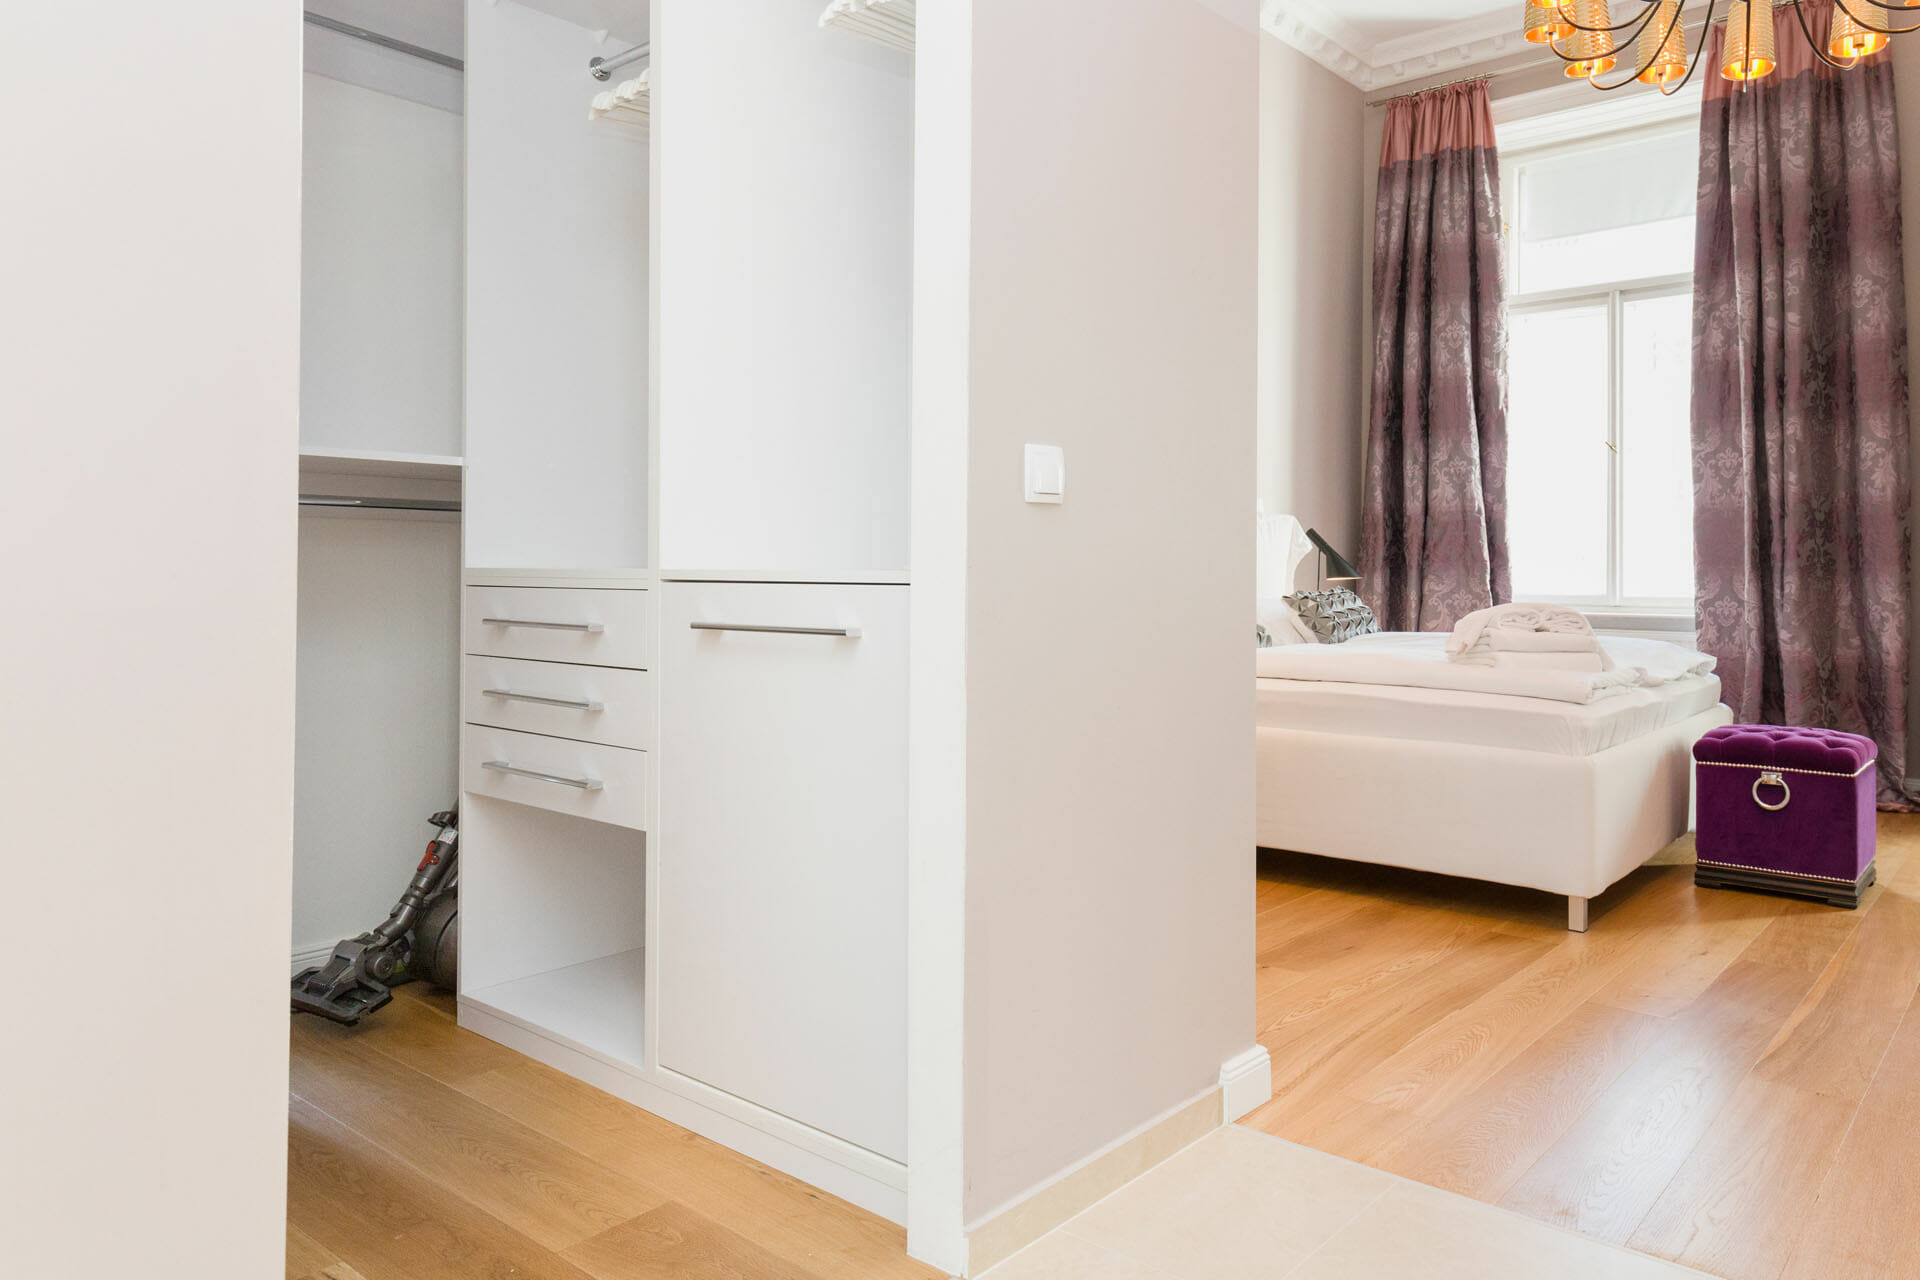 Prestige Apartments in Vienna. Pure Luxury in the Center of Vienna. First class 3 bedroom luxury apartment